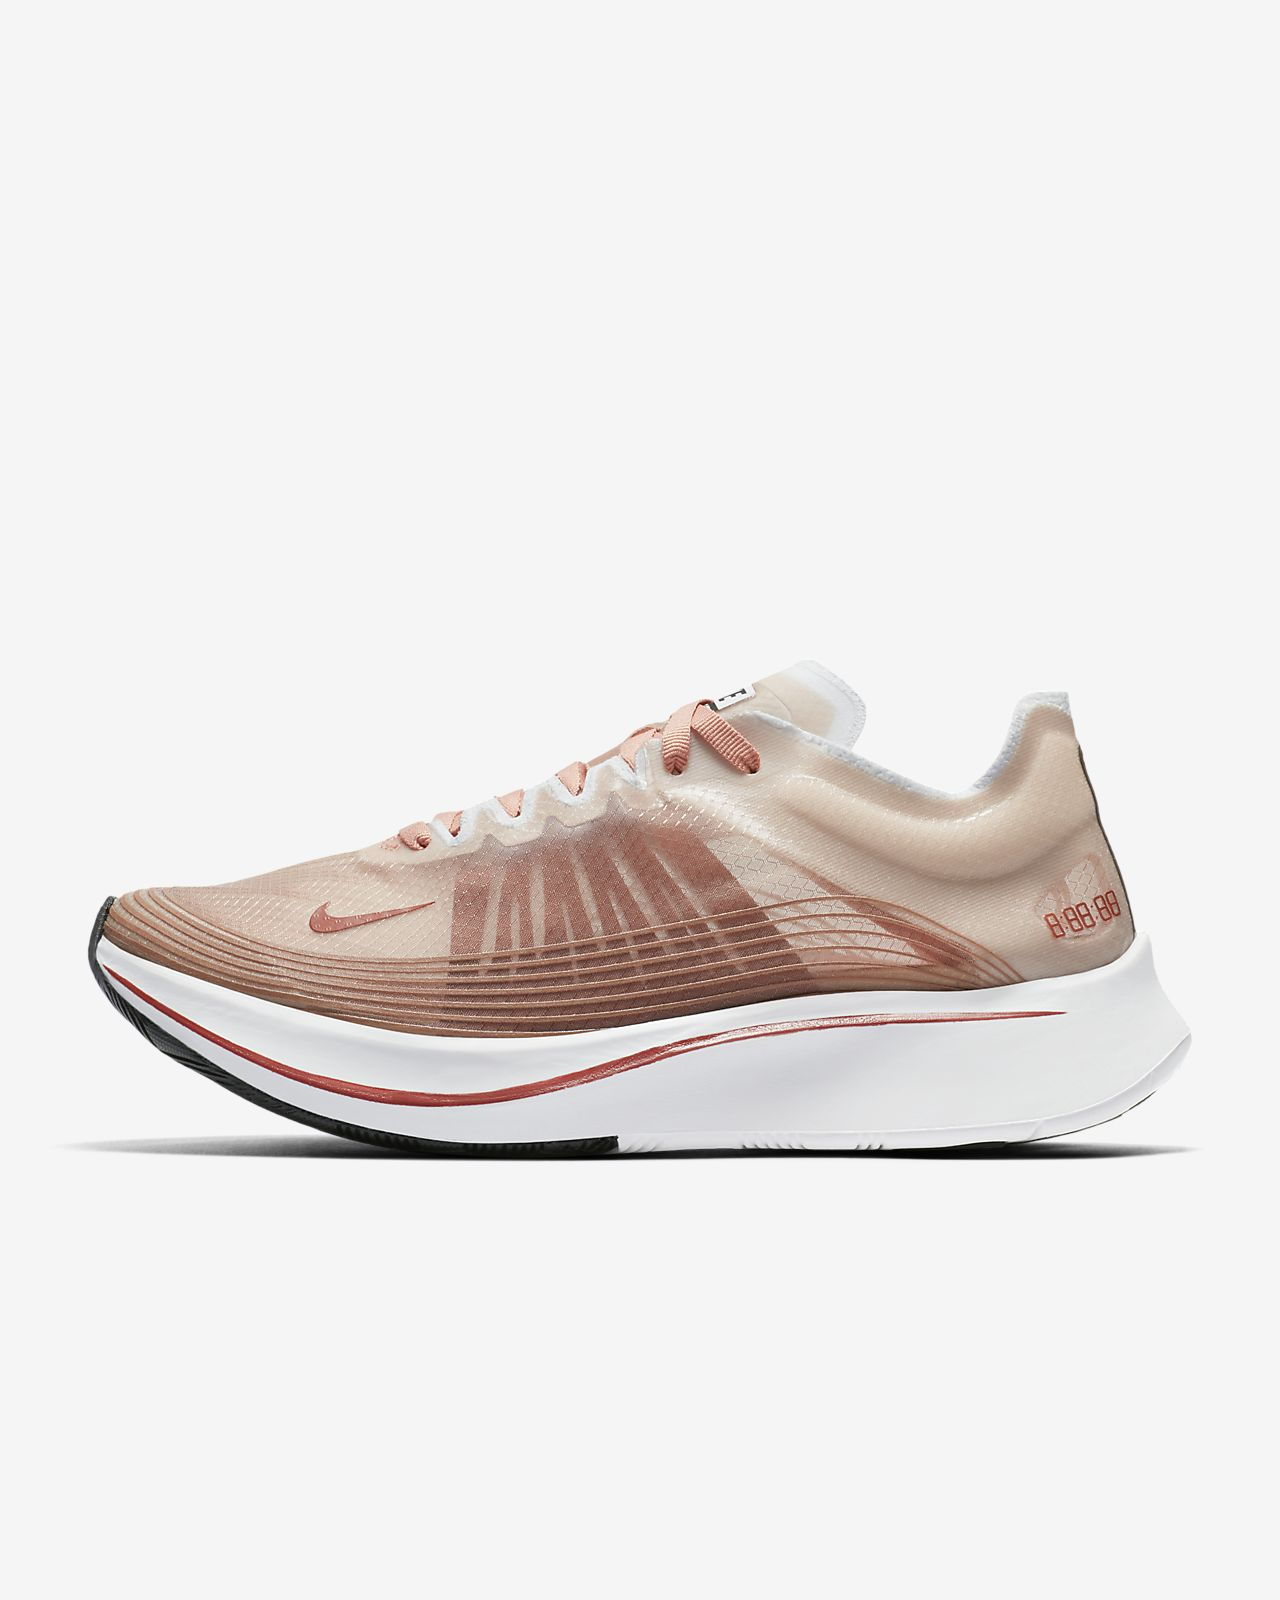 c168ad6adcaa6 Nike Zoom Fly SP Women s Running Shoe. Nike.com SG